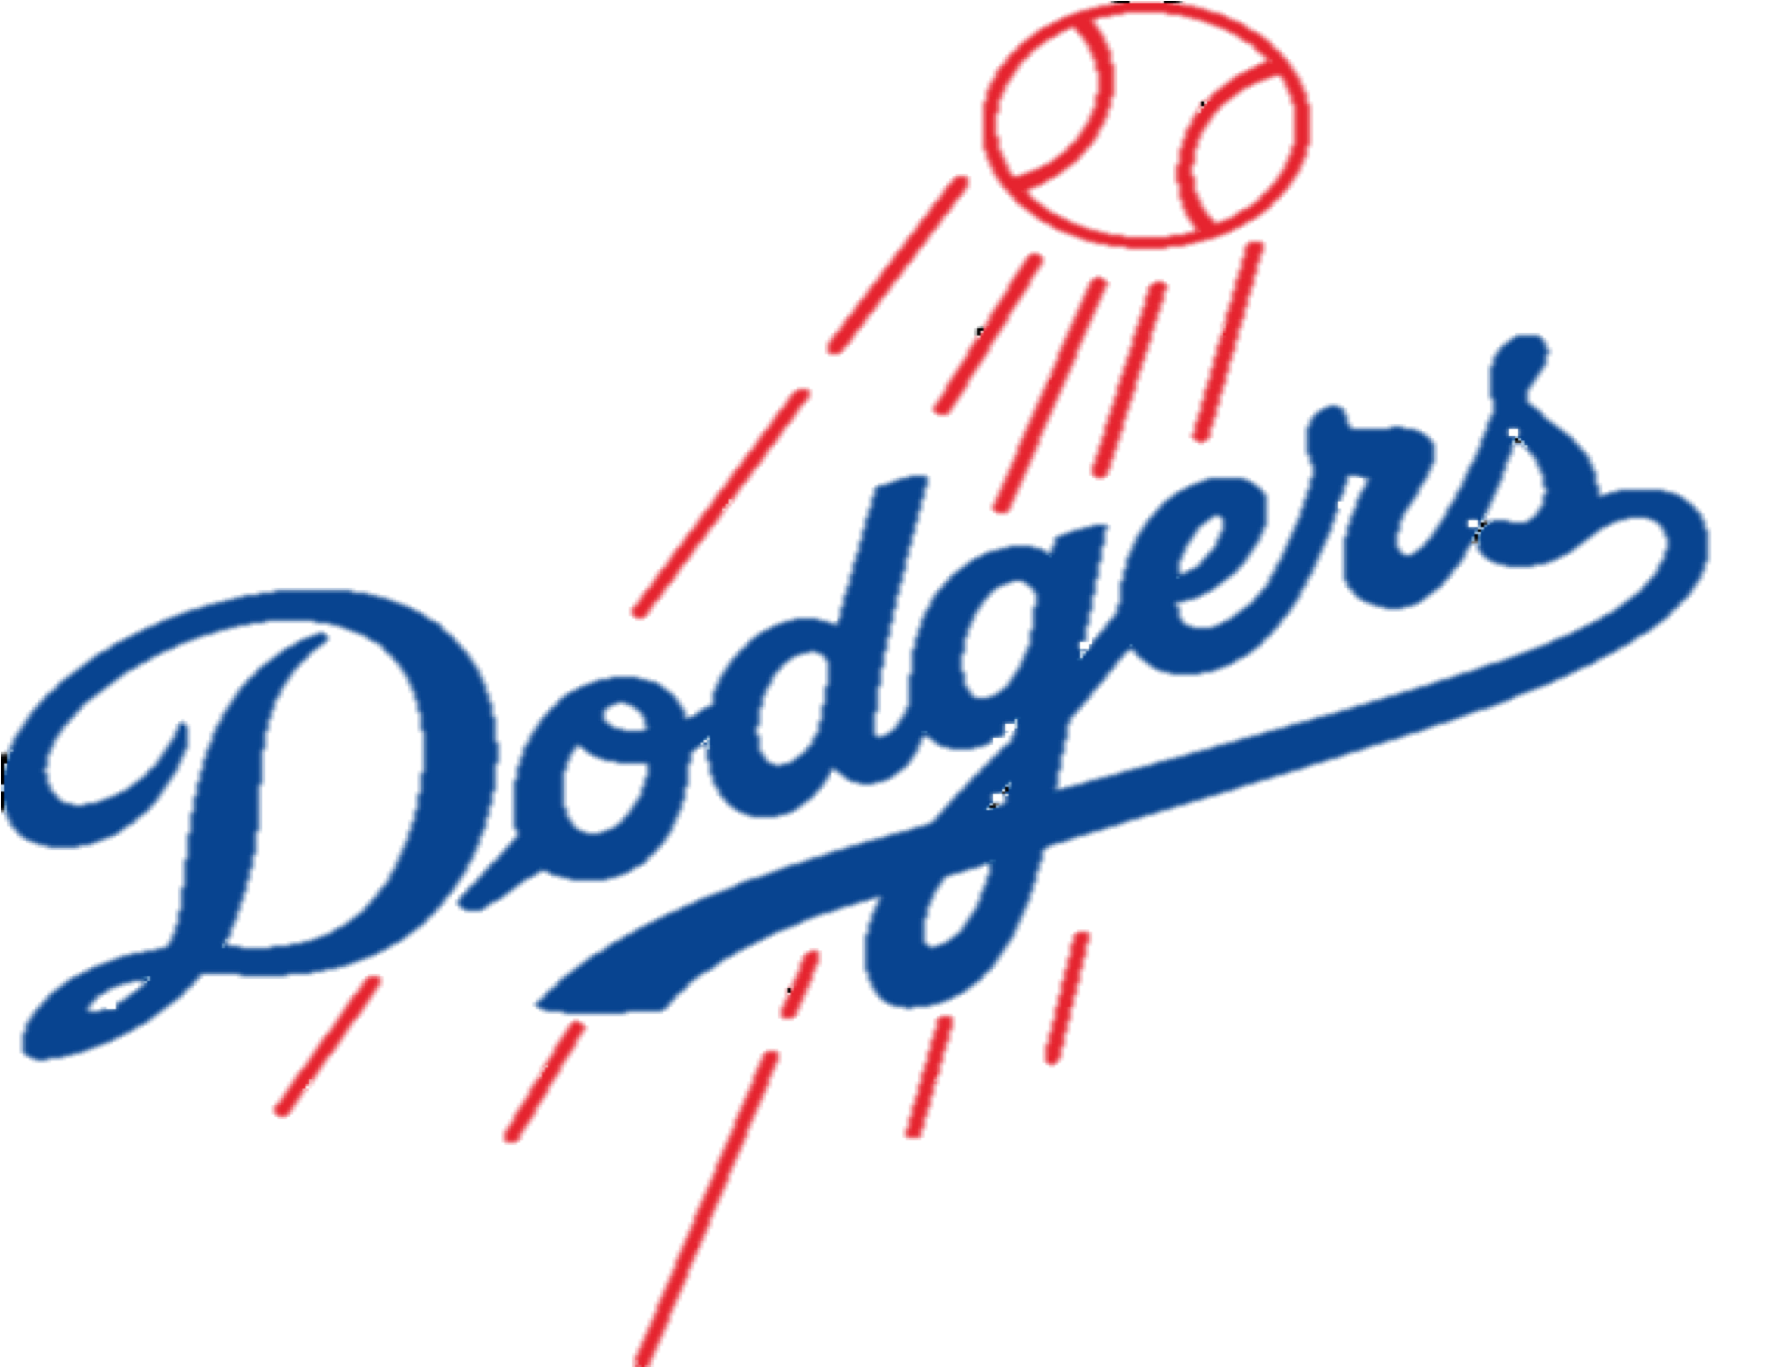 dodgers drawing chicano